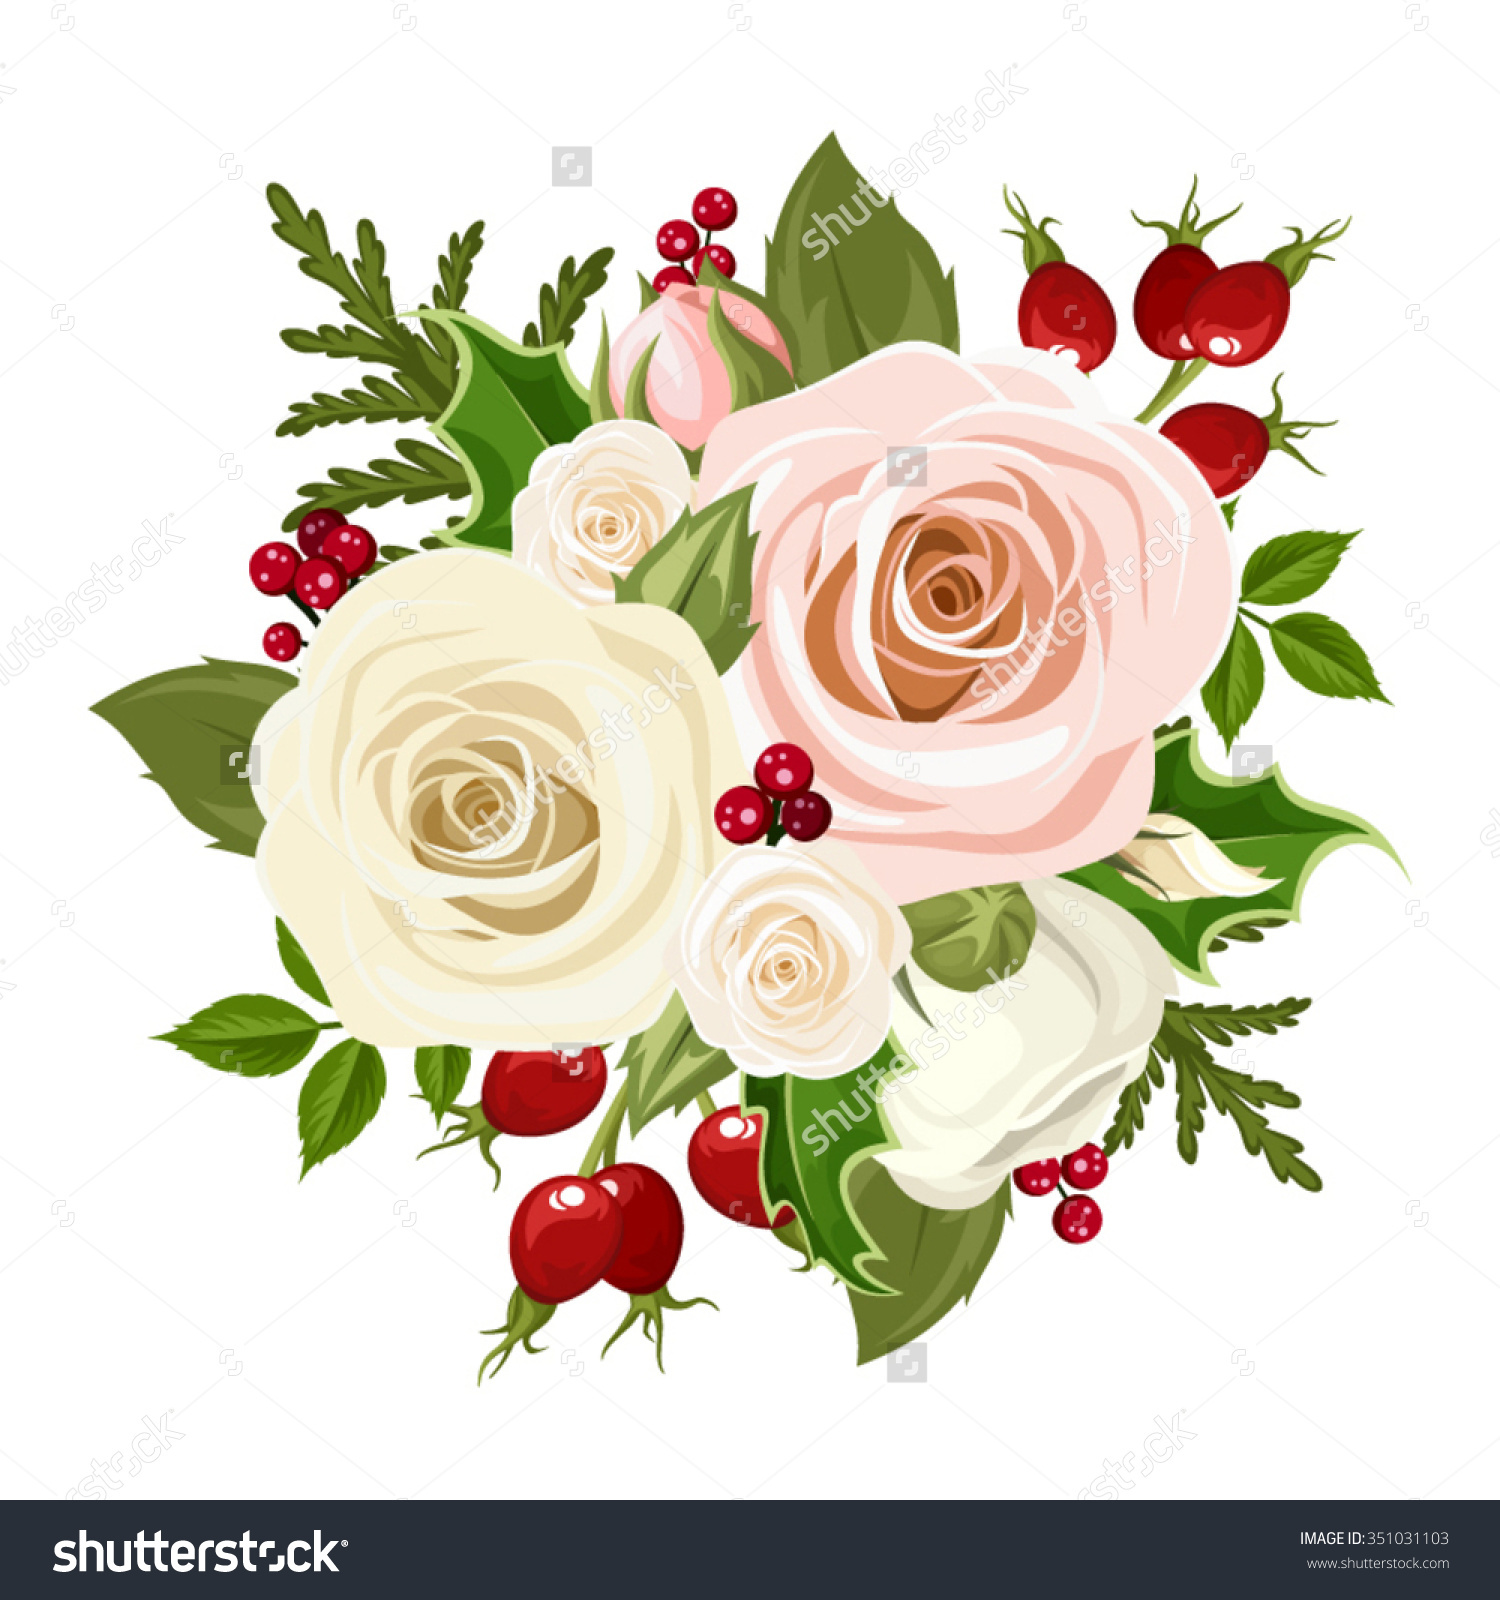 Vector Christmas Bouquet With Pink And White Roses, Rosehip.